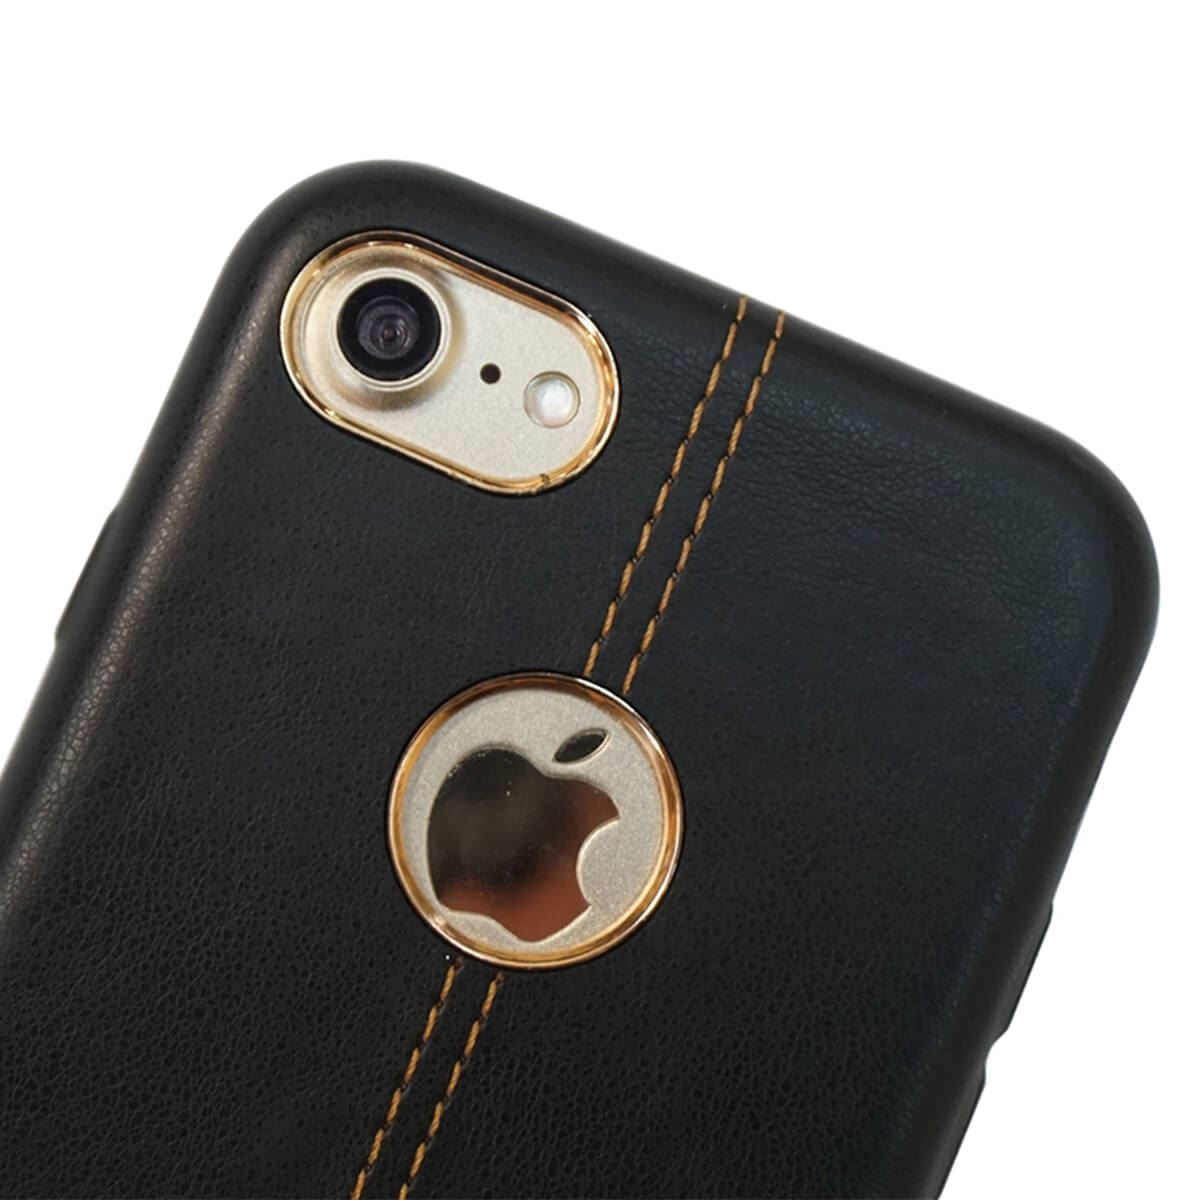 Rugged-Thin-Case-Skin-For-Apple-iPhone-10-X-8-7-Plus-6s-Genuine-Leather-Cover thumbnail 3